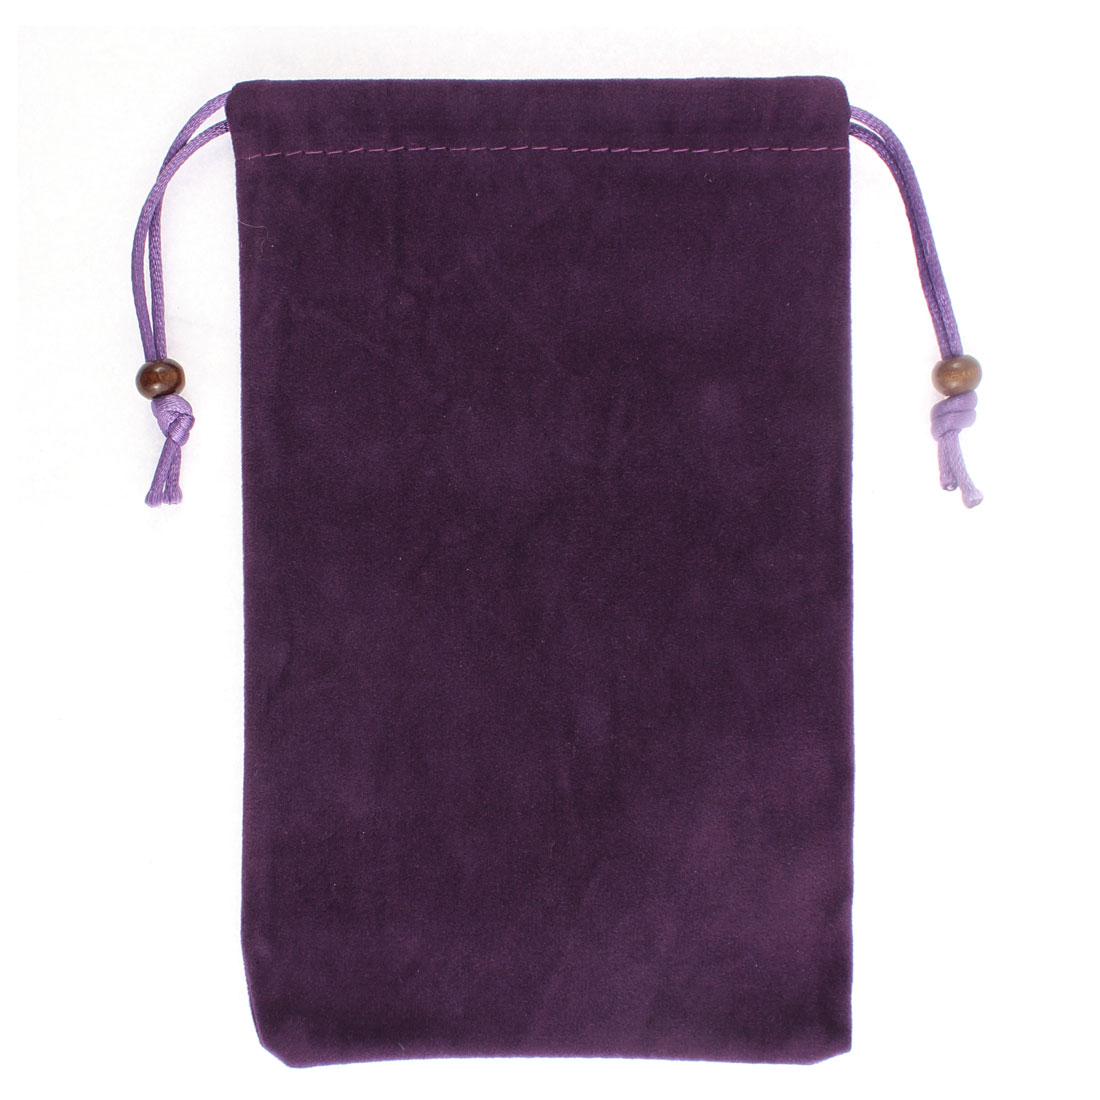 Drawstring Closure Sundries Money Cards Cell Phone Pouch Sleeve Bag Dark Purple